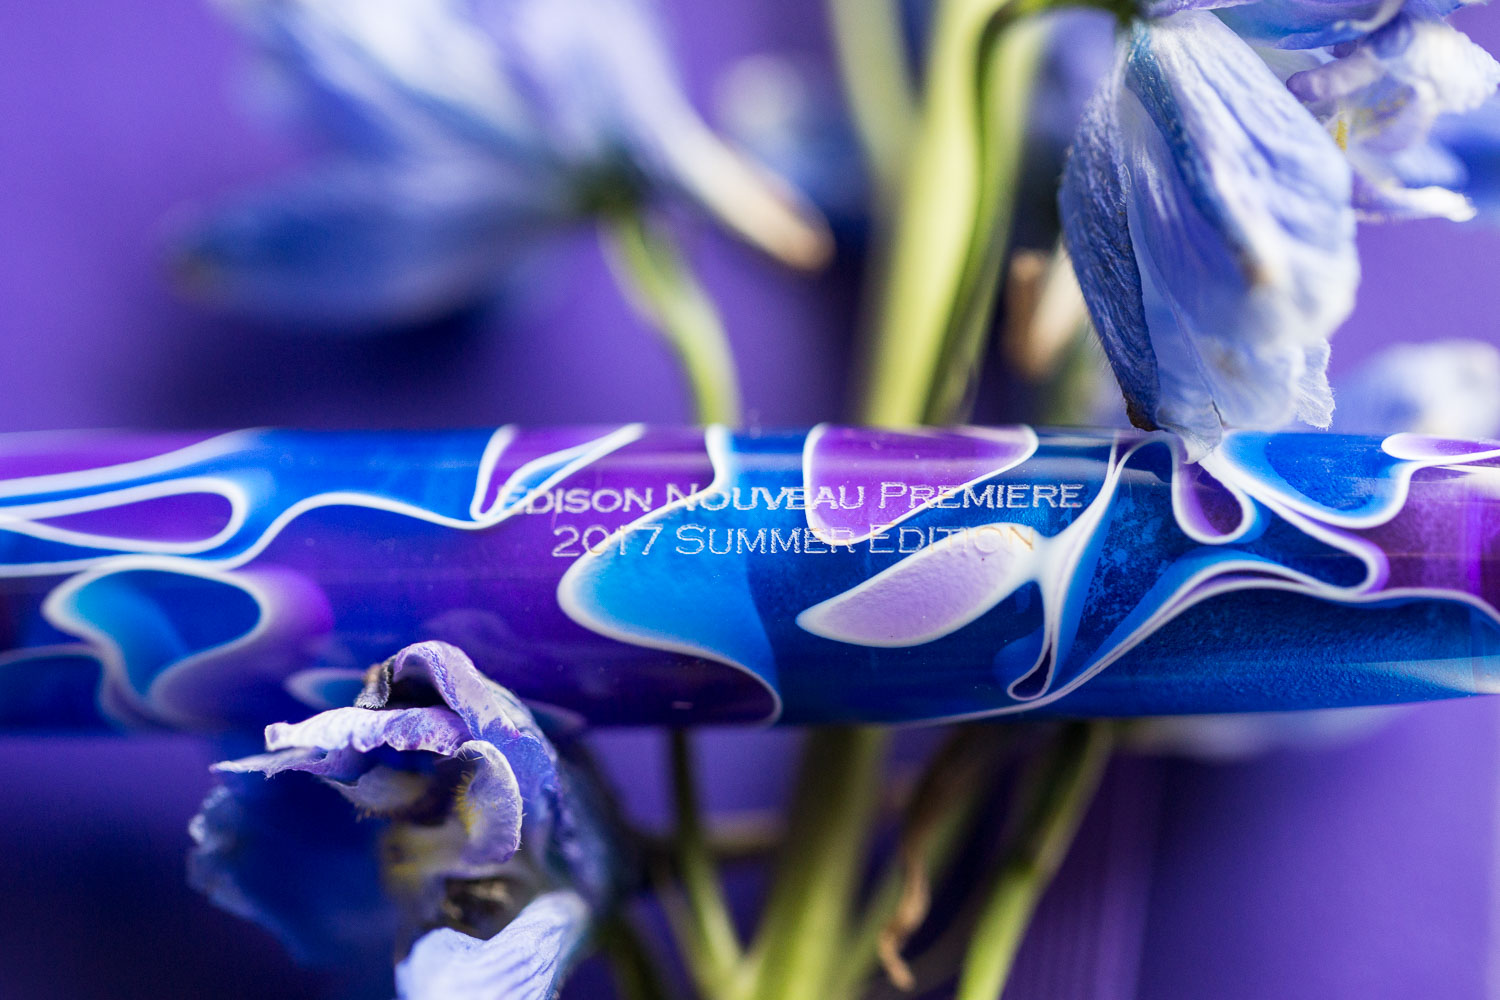 The Edison Nouveau Premiere Delphinium is a gorgeous combination of rich purple and bold blue with ribbons of white.